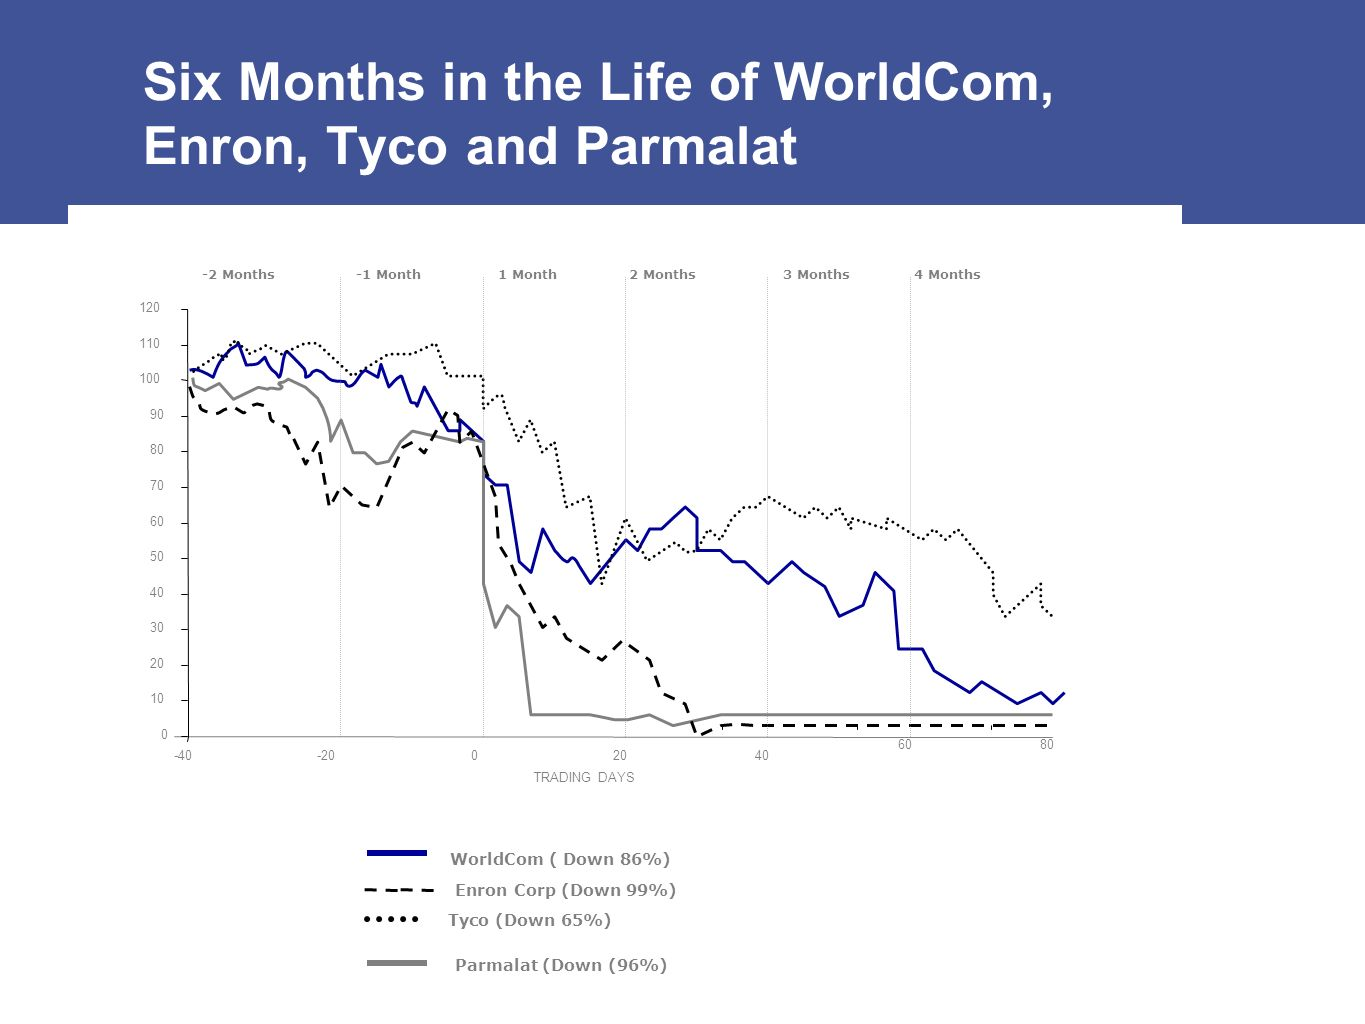 -40-2002040 6080 WorldCom ( Down 86%) Enron Corp (Down 99%) Tyco (Down 65%) Parmalat (Down (96%) -2 Months-1 Month1 Month2 Months3 Months4 Months TRAD